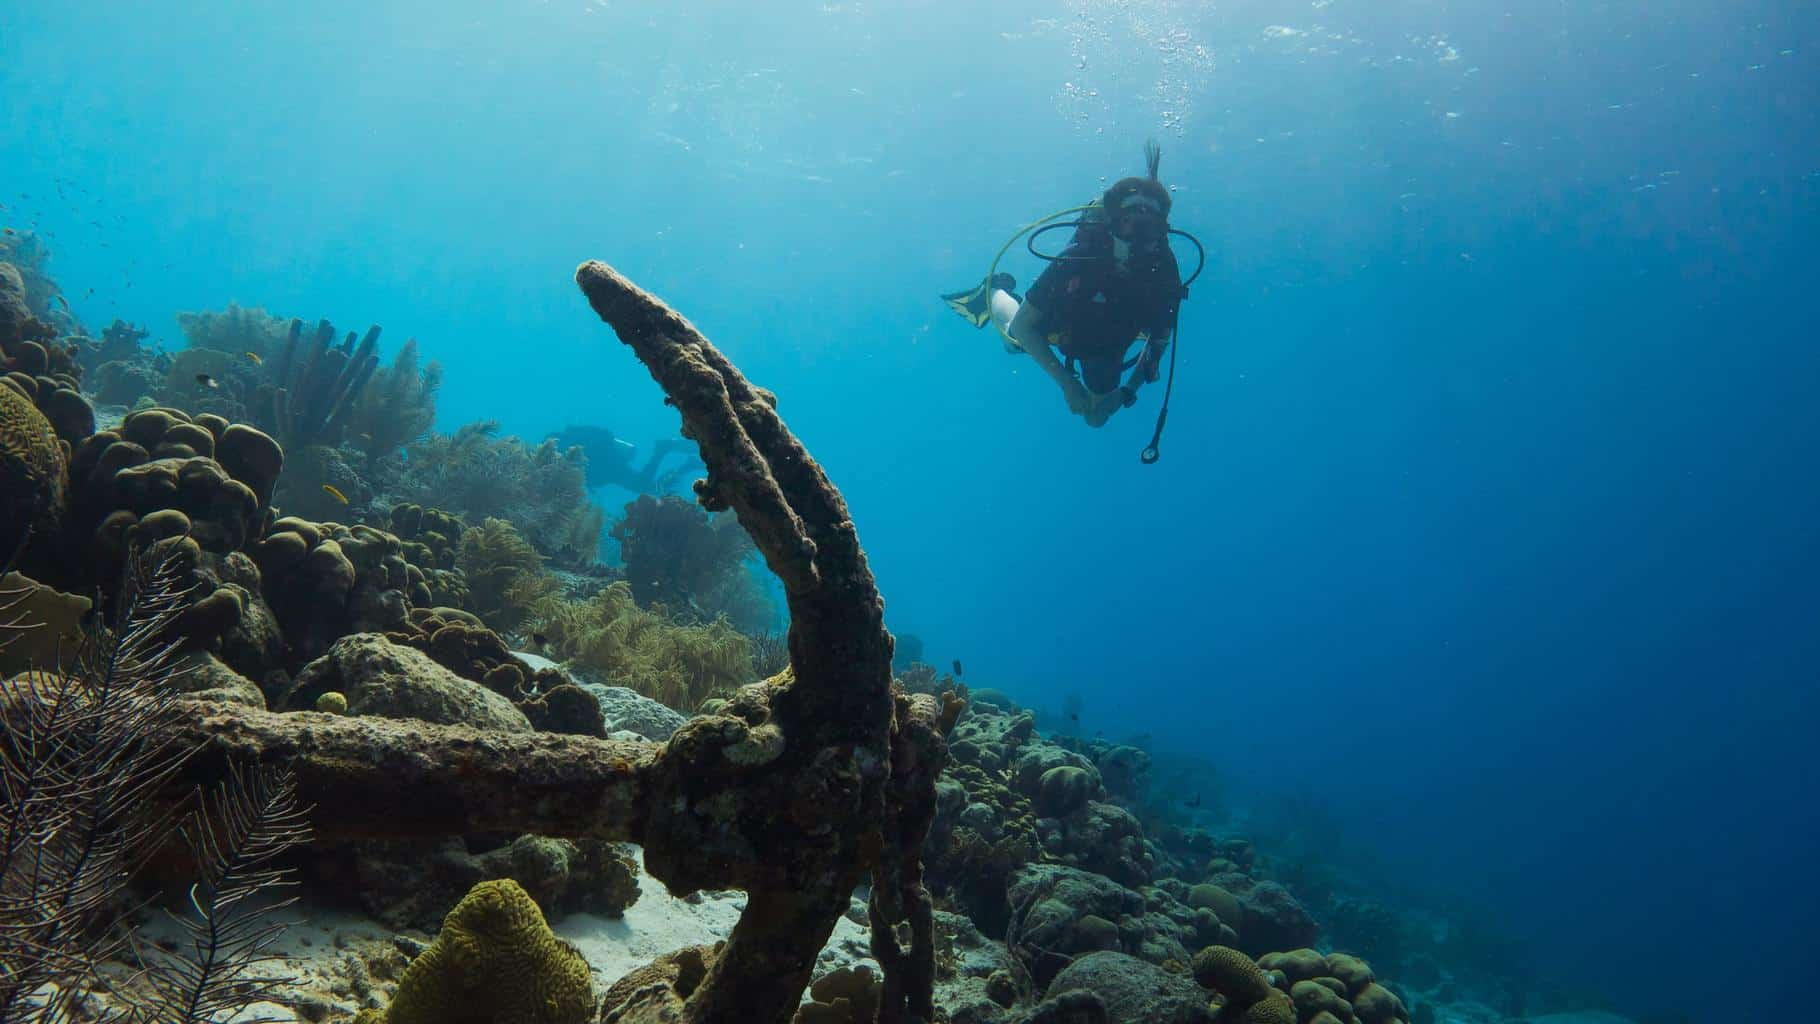 10 Things Not to Do Before Scuba Diving